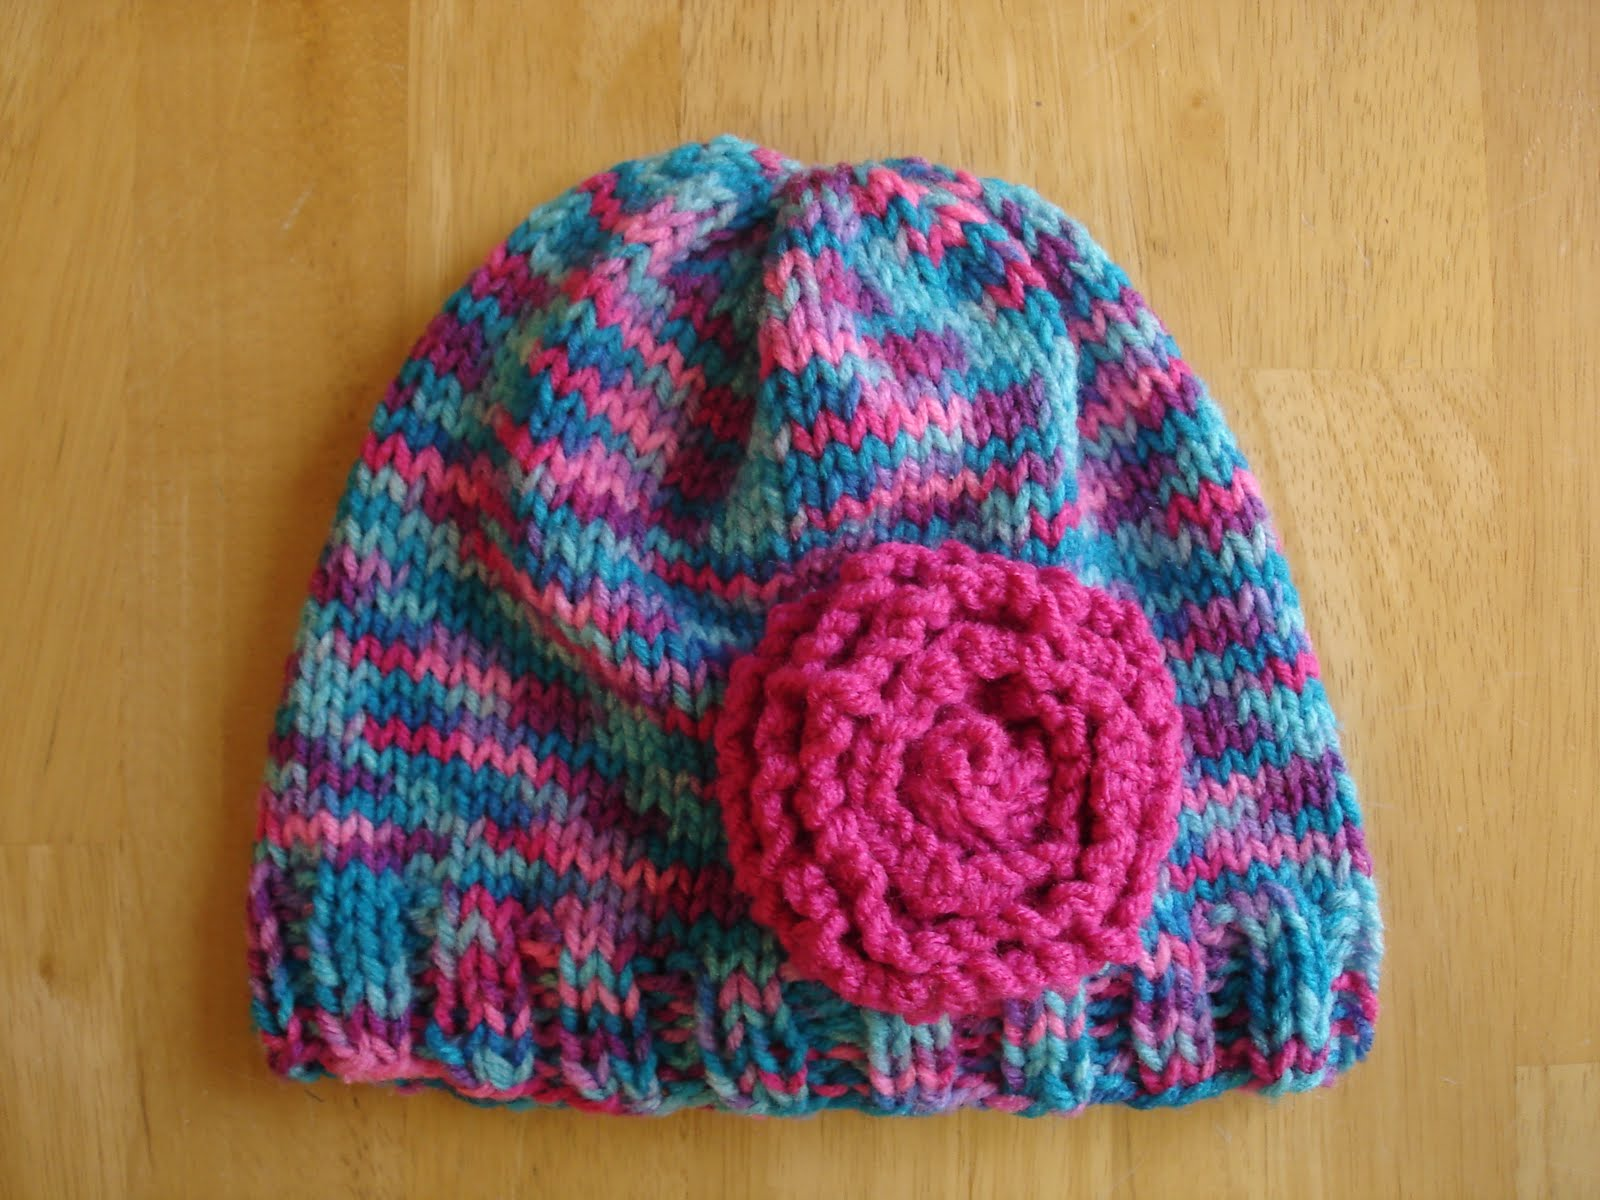 Free Knitting Patterns For Toddlers Beanies : Fiber Flux: Free Knitting Pattern...Baby Doll Hats!